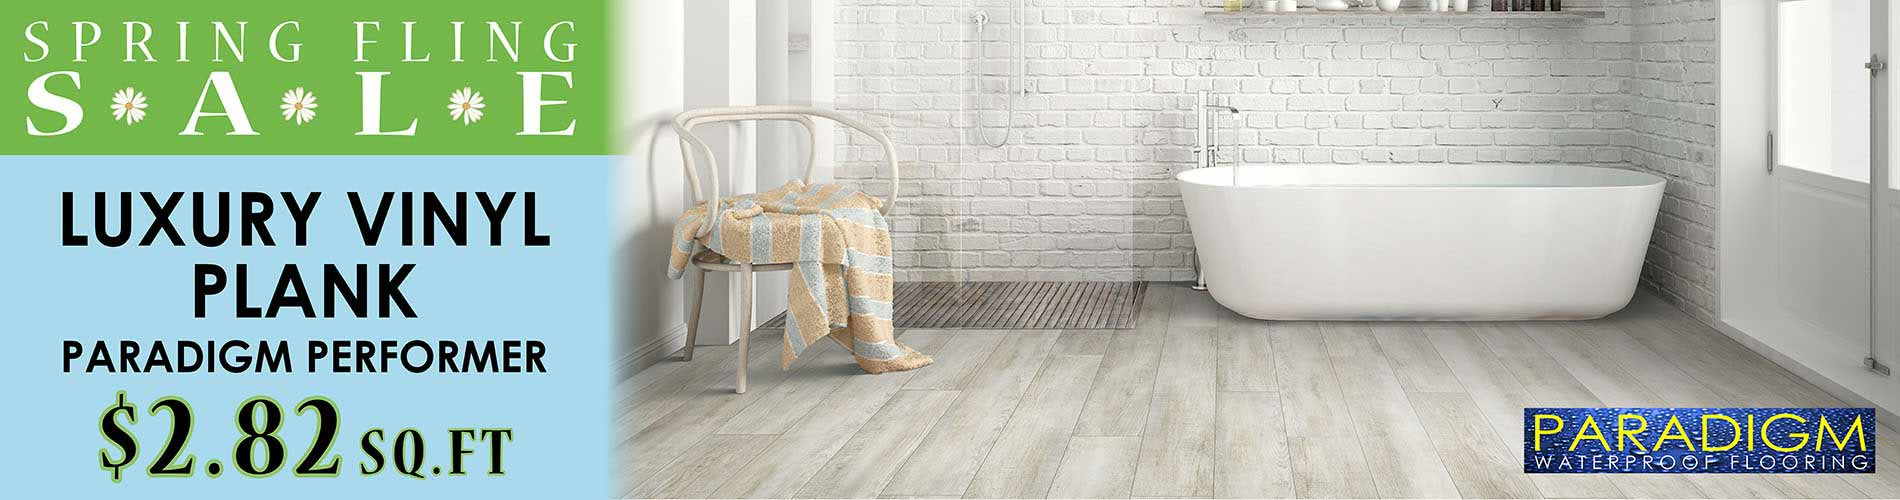 Paradigm Luxury Vinyl Plank Flooring starting at $2.82 during our Spring Fling Sale at Floor Express in Tumwater, WA